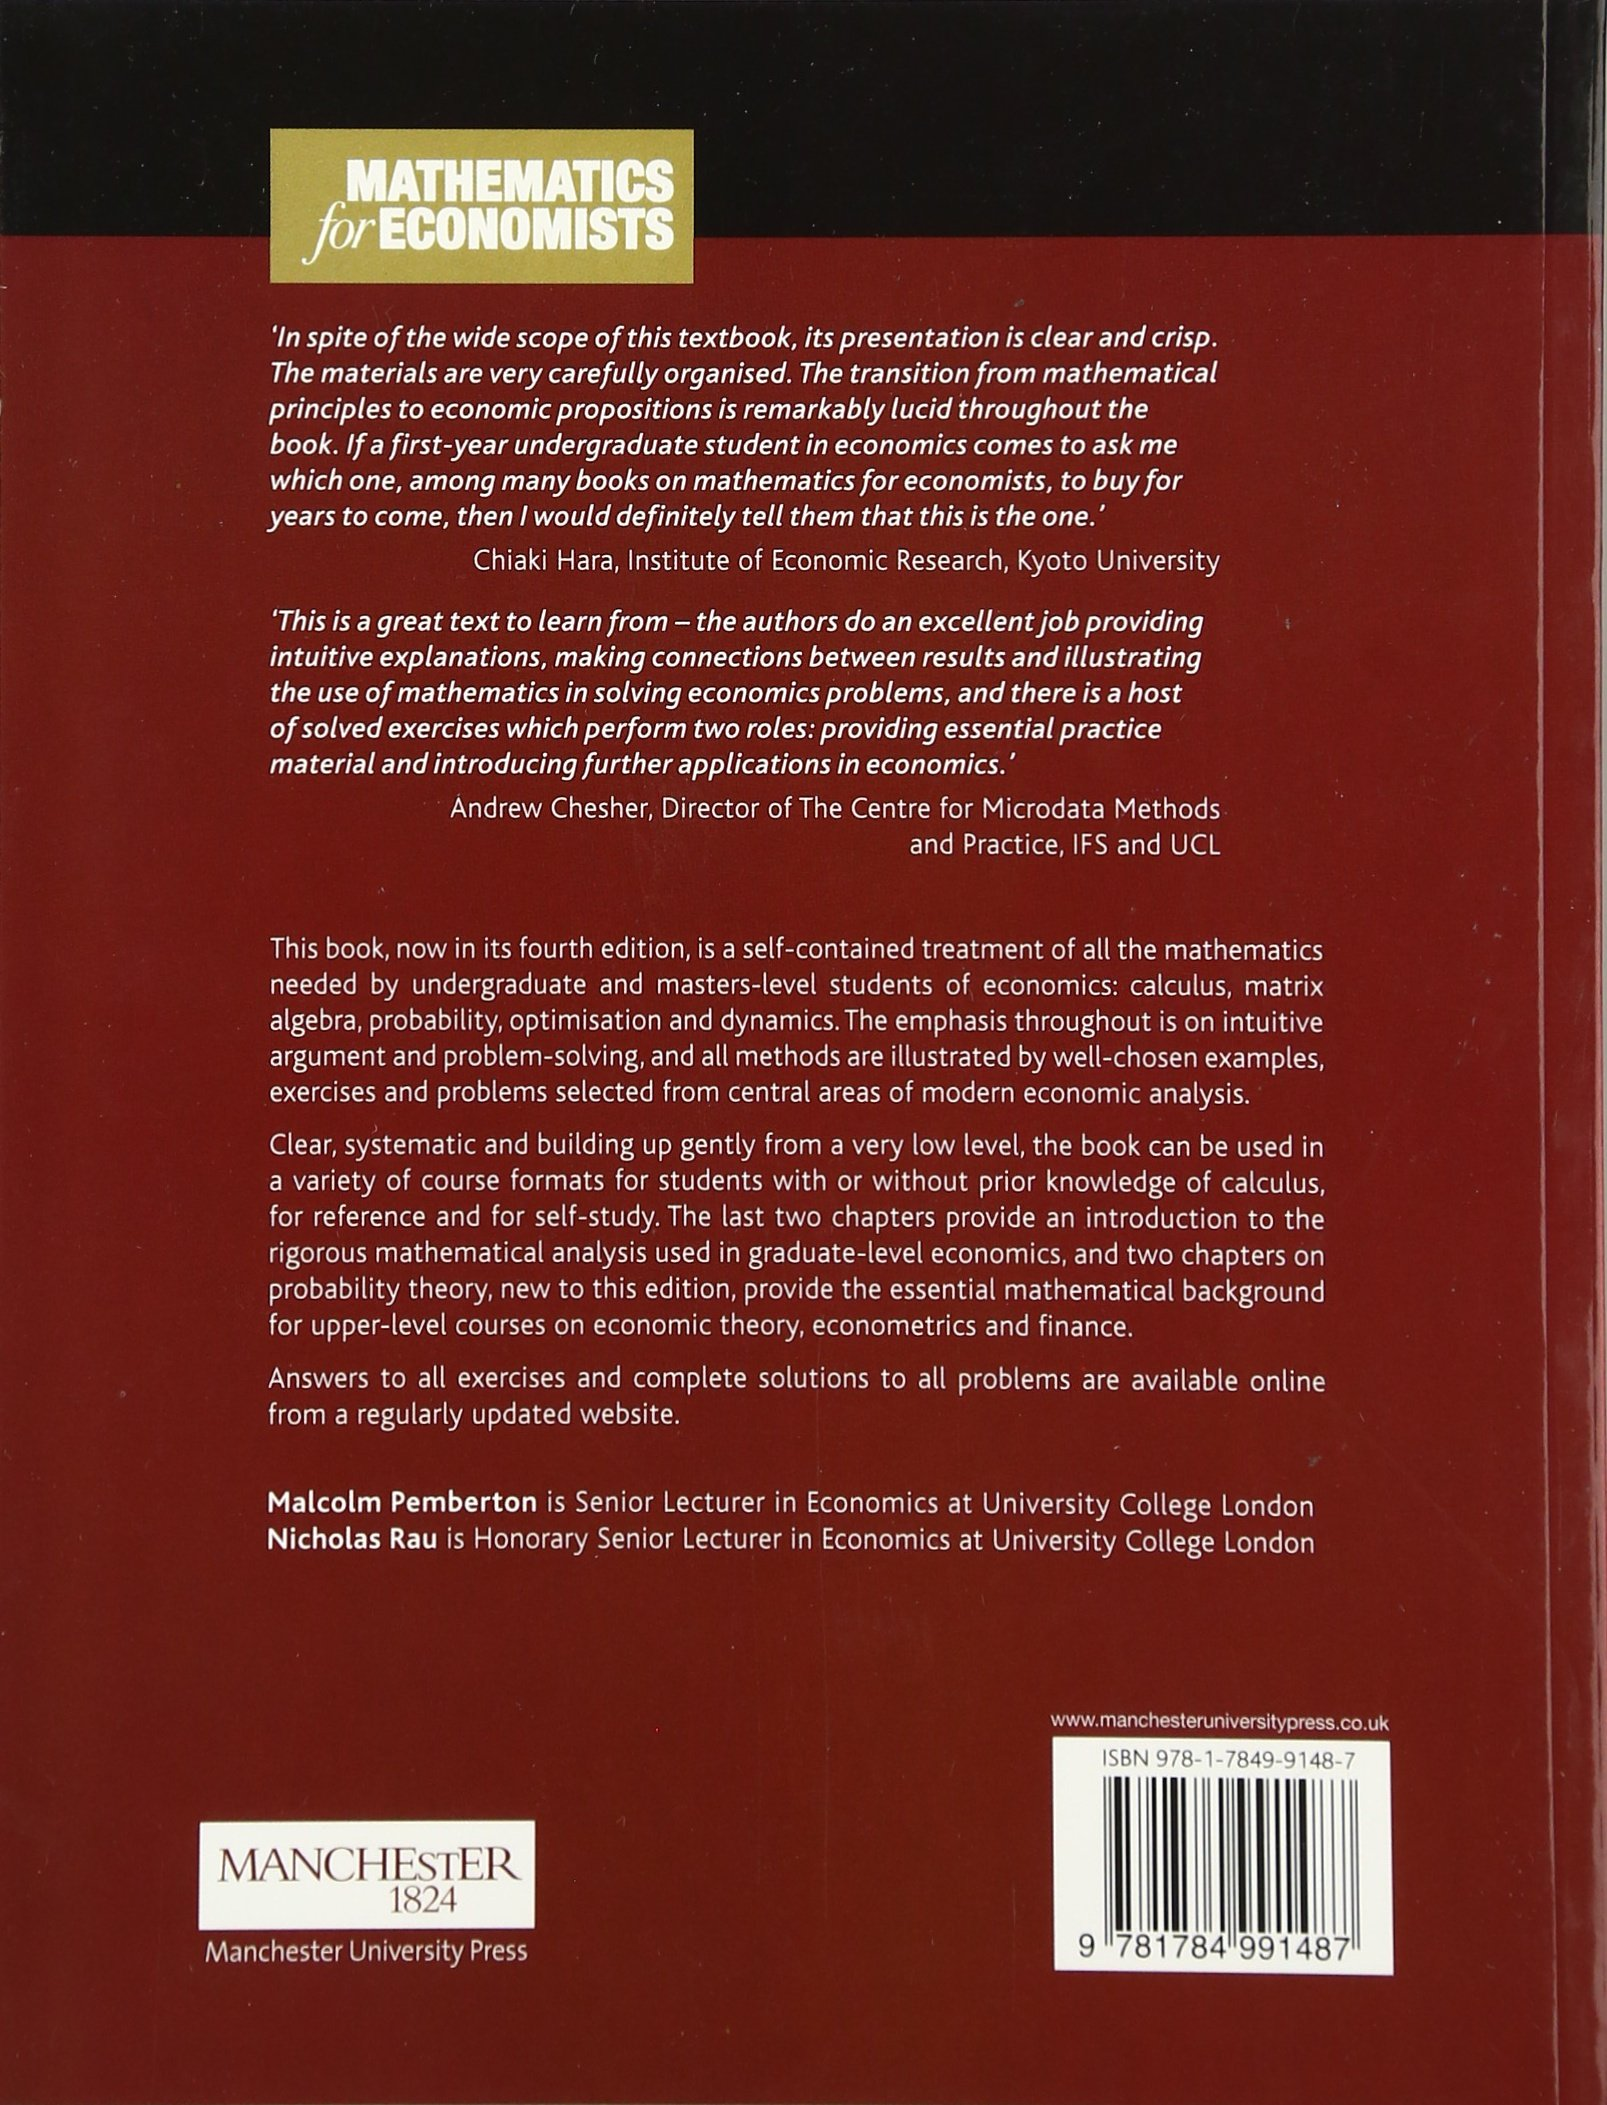 Mathematics for economists an introductory textbook amazon mathematics for economists an introductory textbook amazon malcolm pemberton nicholas rau 9781784991487 books fandeluxe Gallery